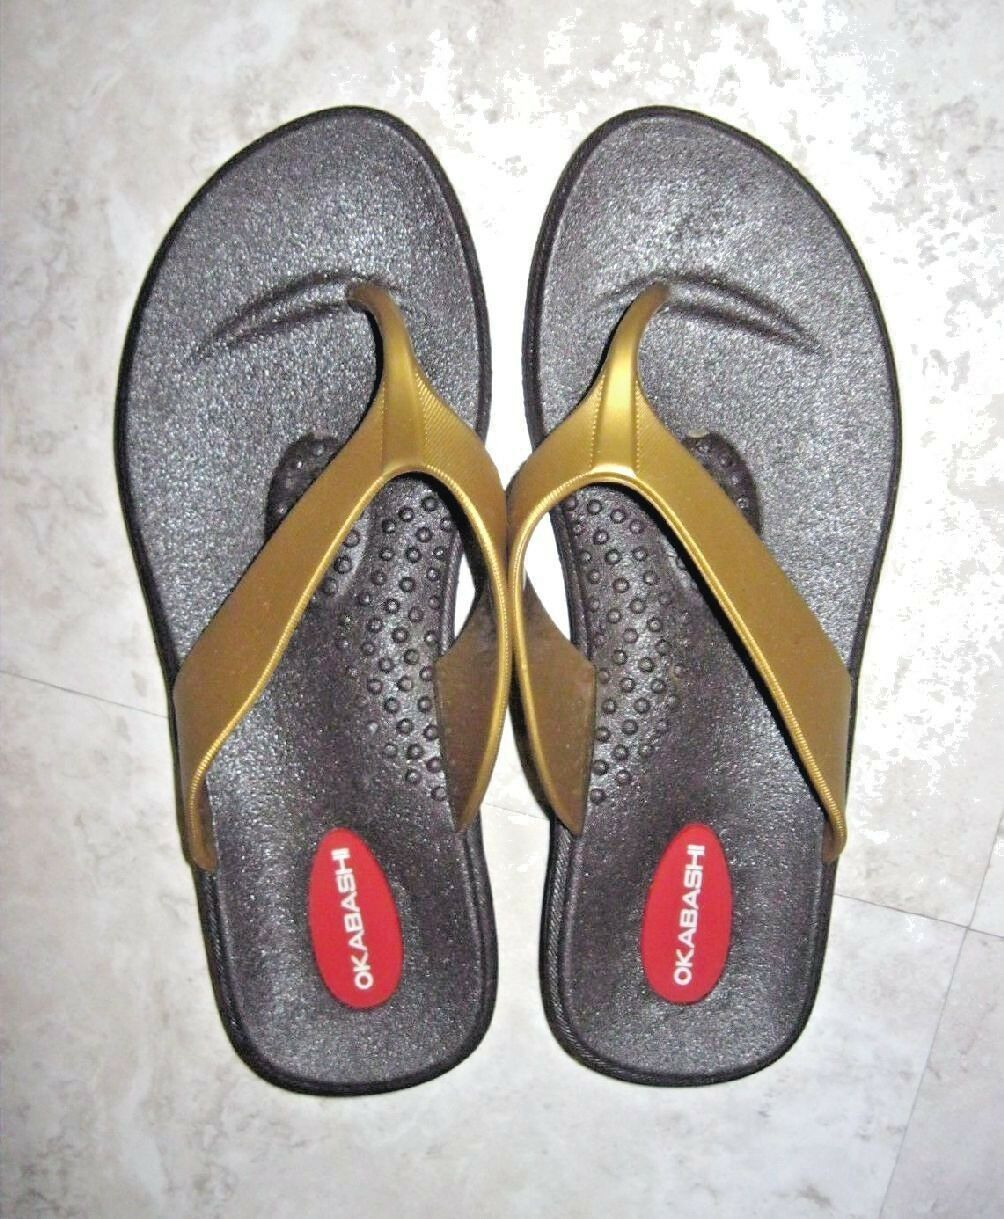 Women's OKABASHI Gold Brown RUBBER 5-5.1/2 Flip Flop Sandals Size 5-5.1/2 RUBBER  EUC 9deac7